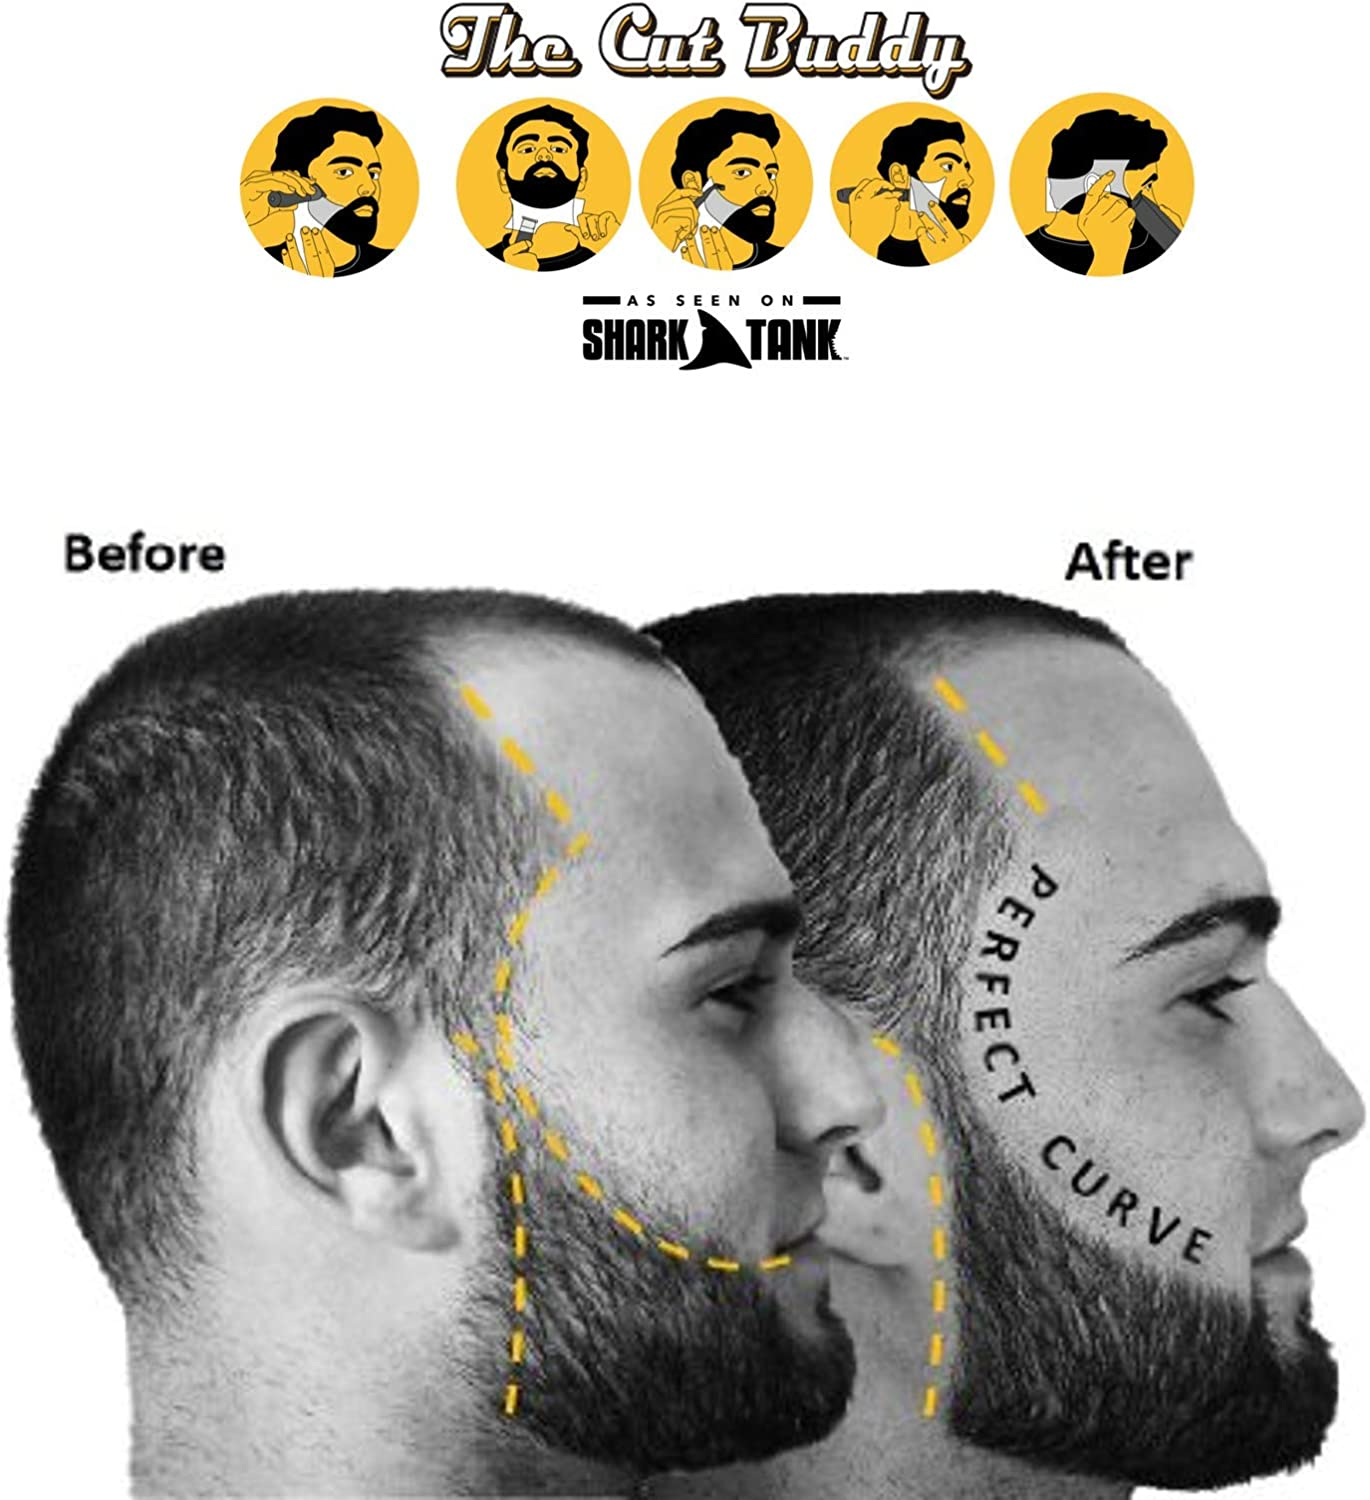 The Cut Buddy As Seen On Shark Tank - Beard Shaping Tool, Hair Trimmer  Guide, Mens Beard Template Tool, Goatee Liner, Mustache Styling Shaper,  Neck